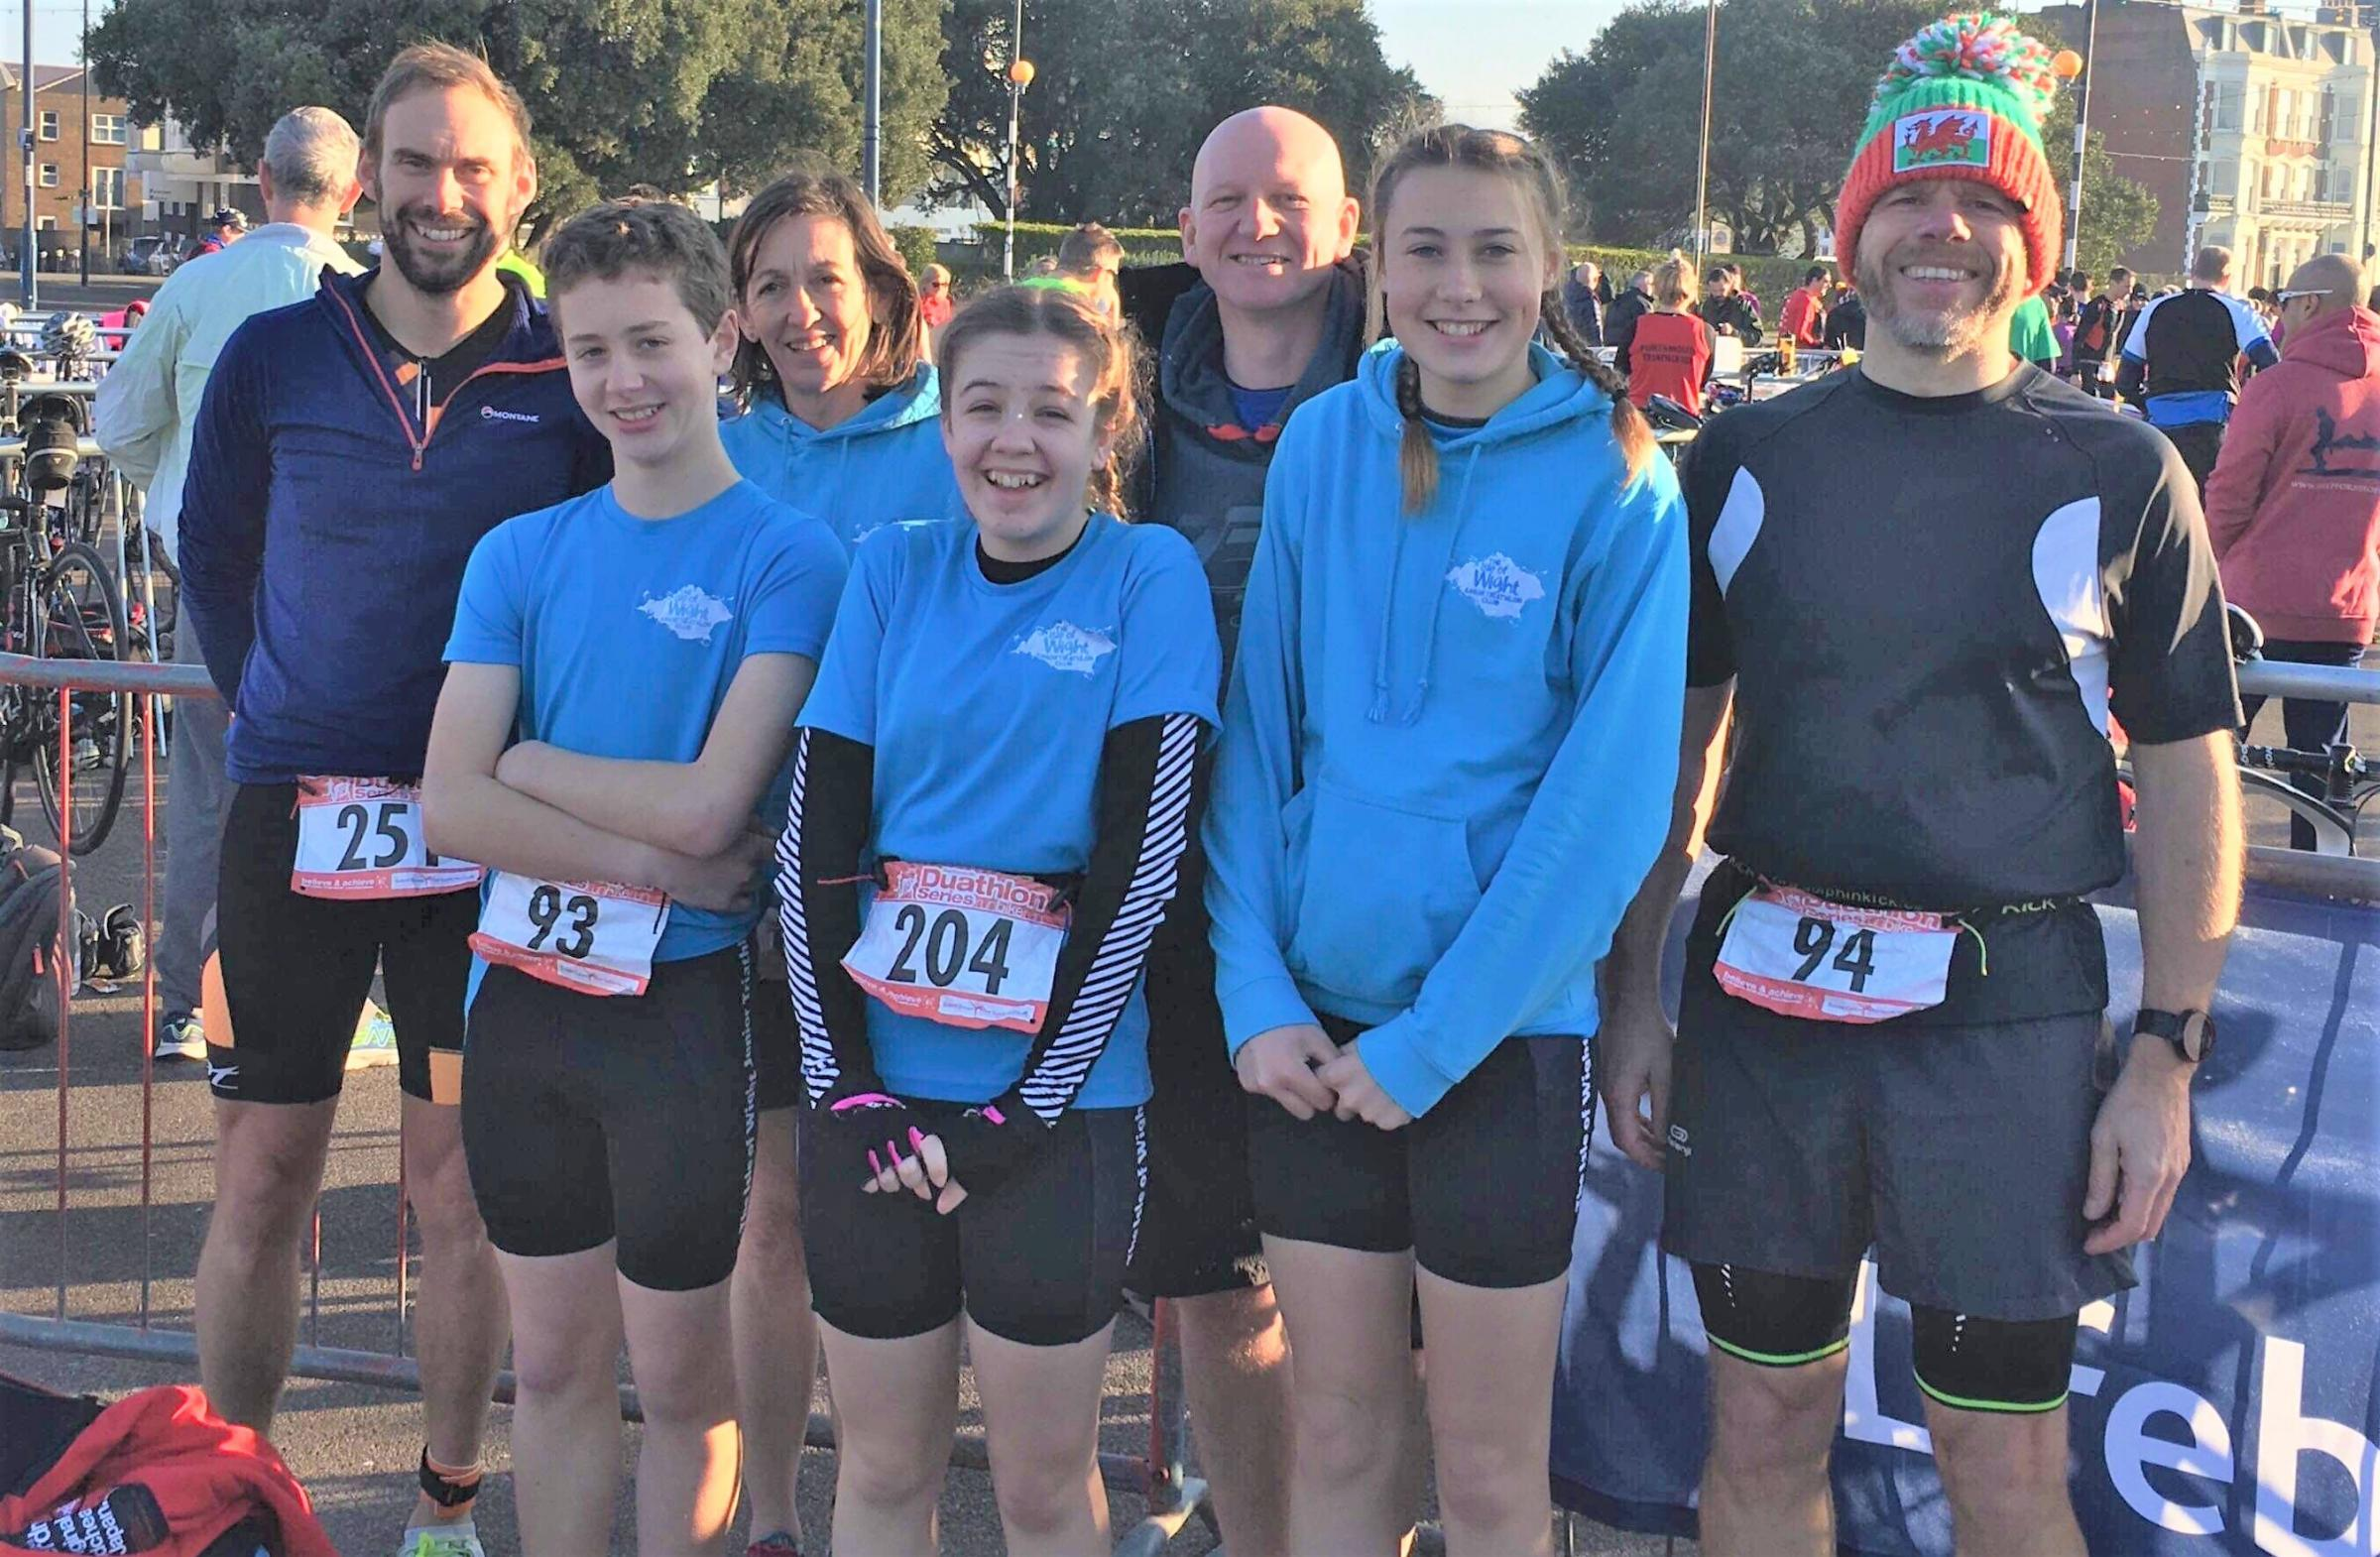 Members of the Isle of Wight Triathlon Club who took part in the Portsmouth Duathlon — coaches Simon Pilcher, Julie Van der Helstraete, John Hepworth and Rob Holbrook, with young athletes Gethin Hepworth, Lottie-Rose Van der Helstraete and Millie Willia